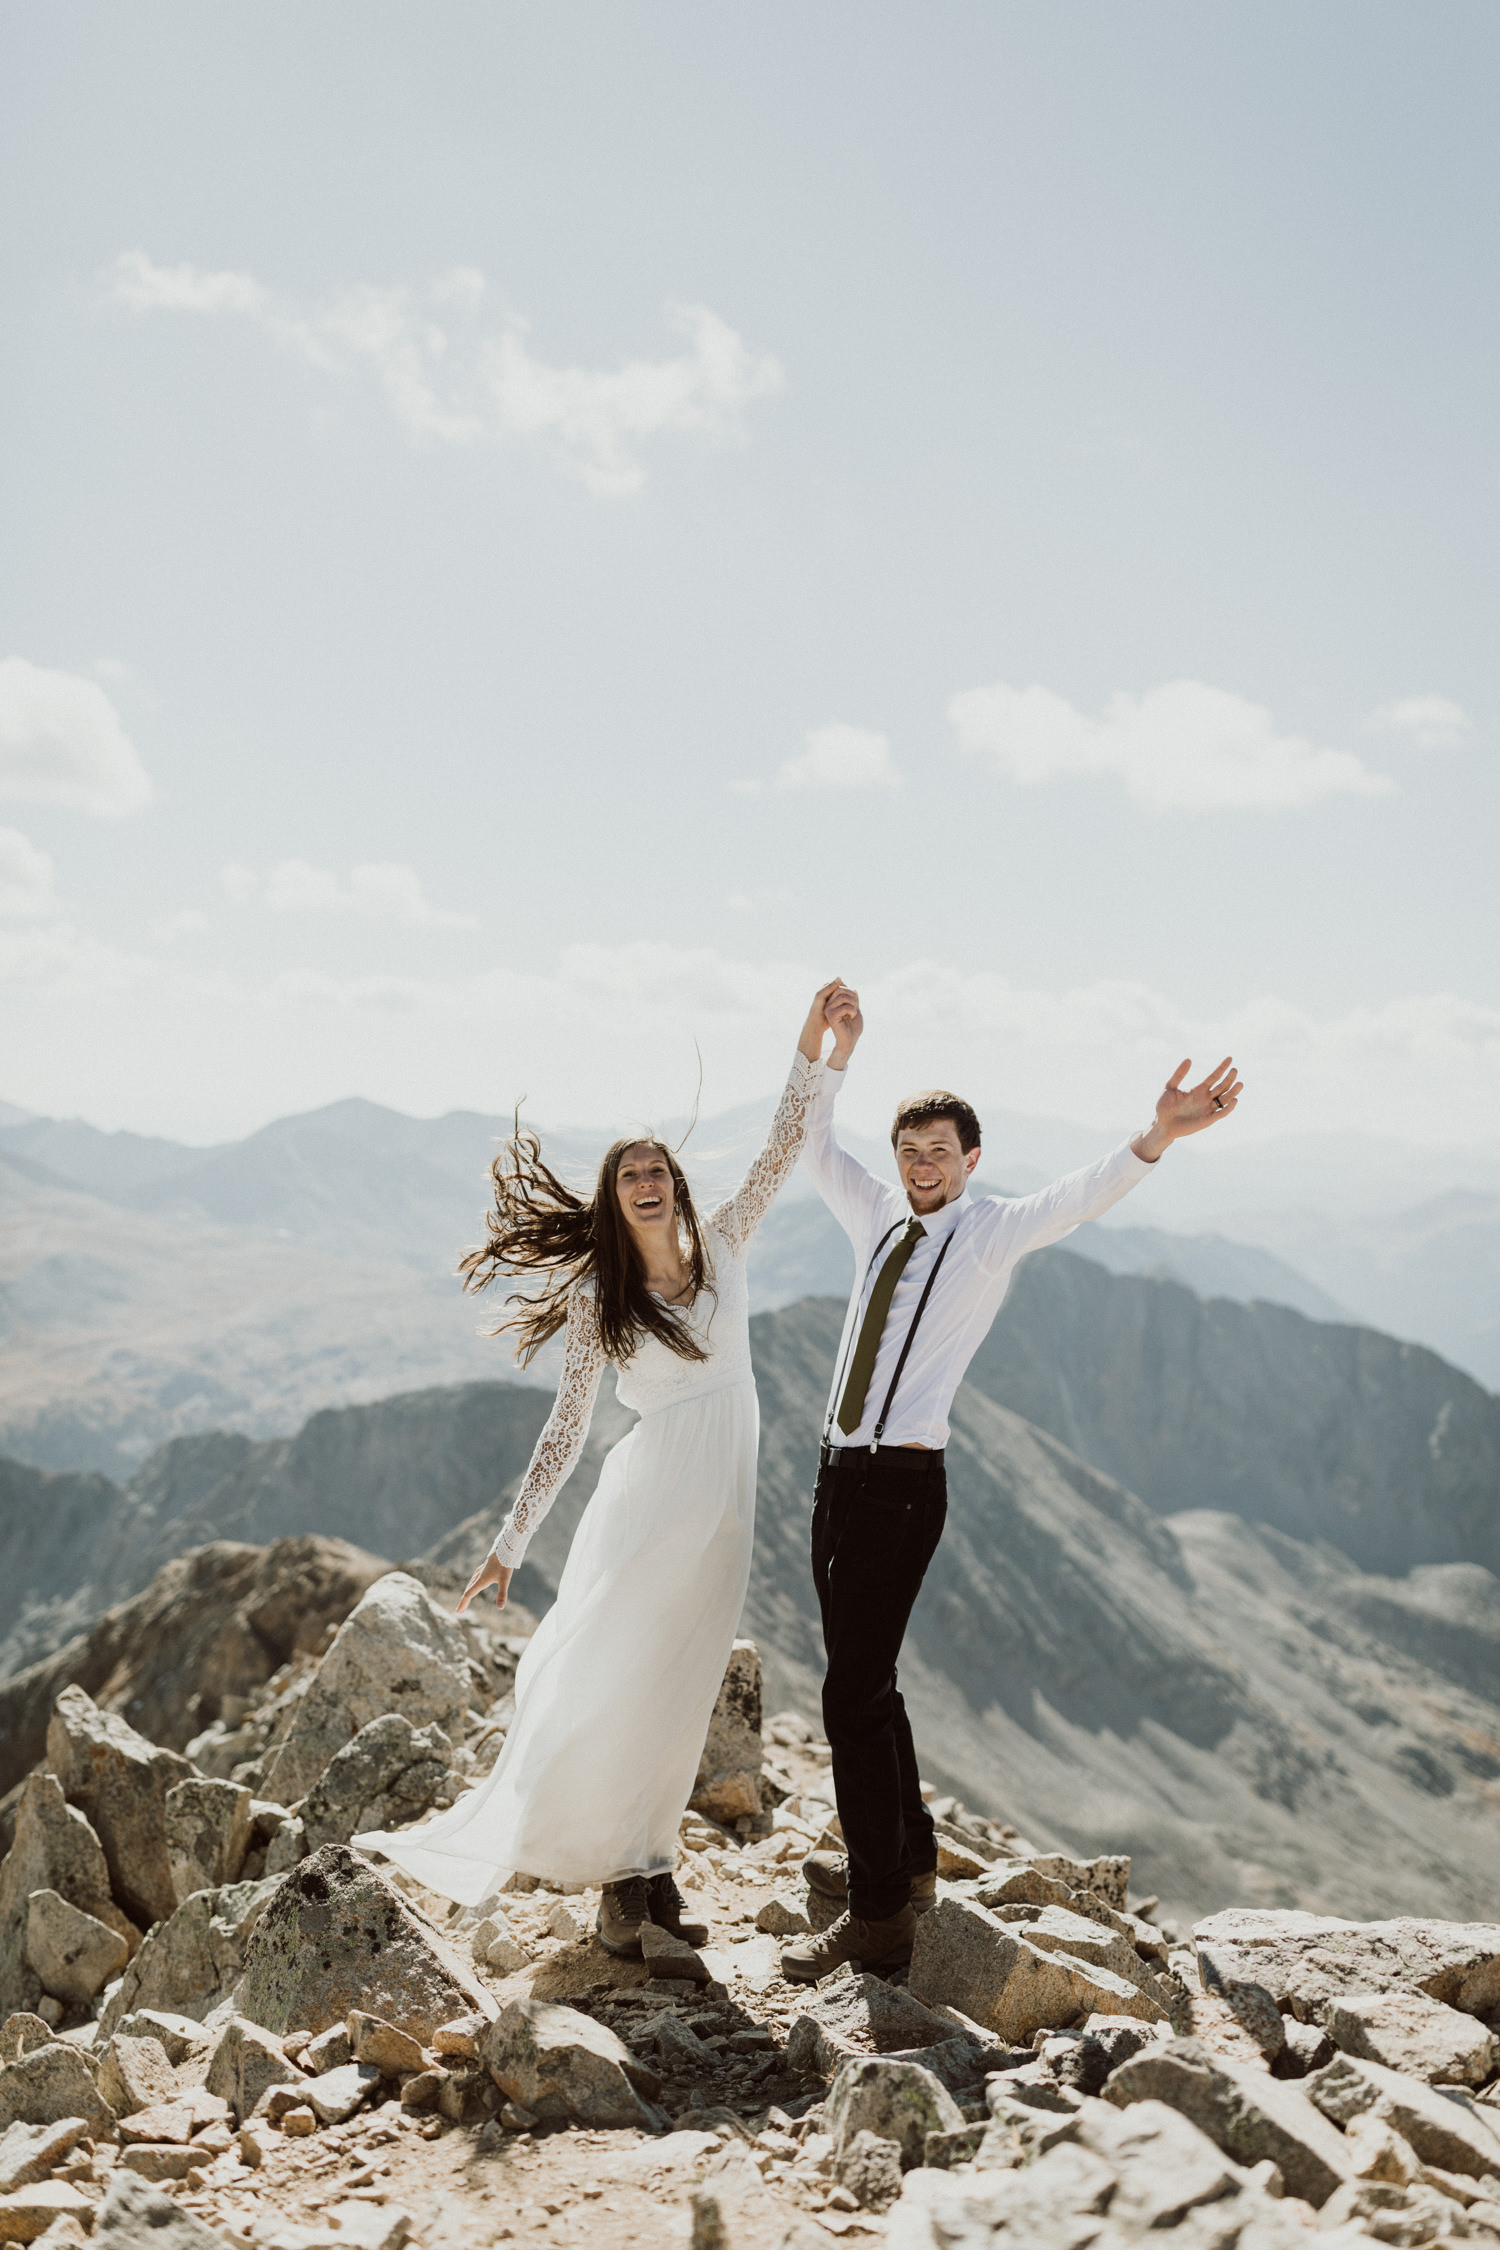 fourteener-adventure-wedding-photographer-96.jpg